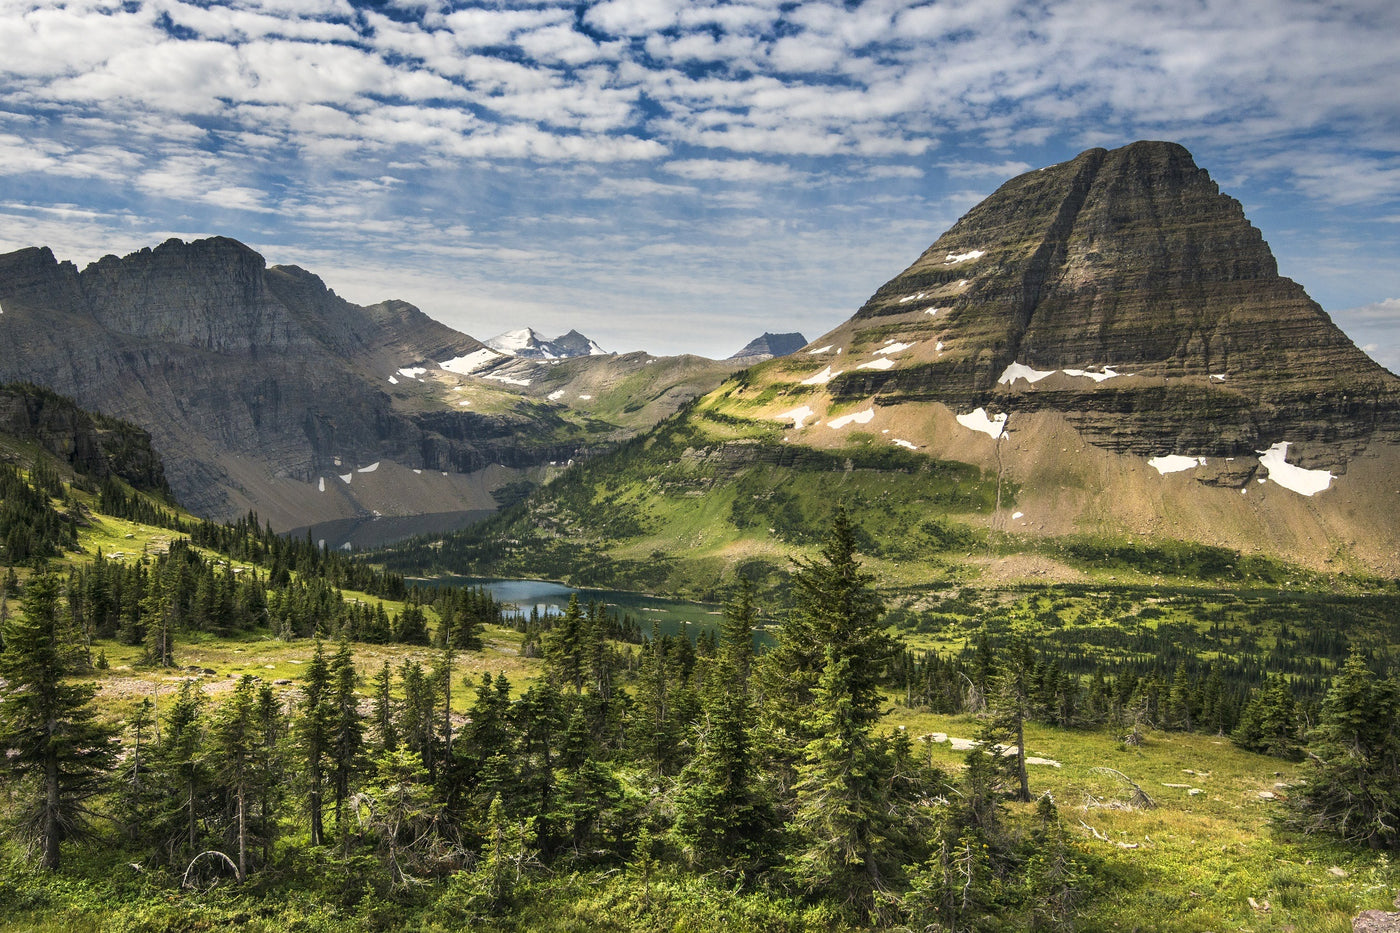 View of green trees and snowy mountains at Glacier National Park.